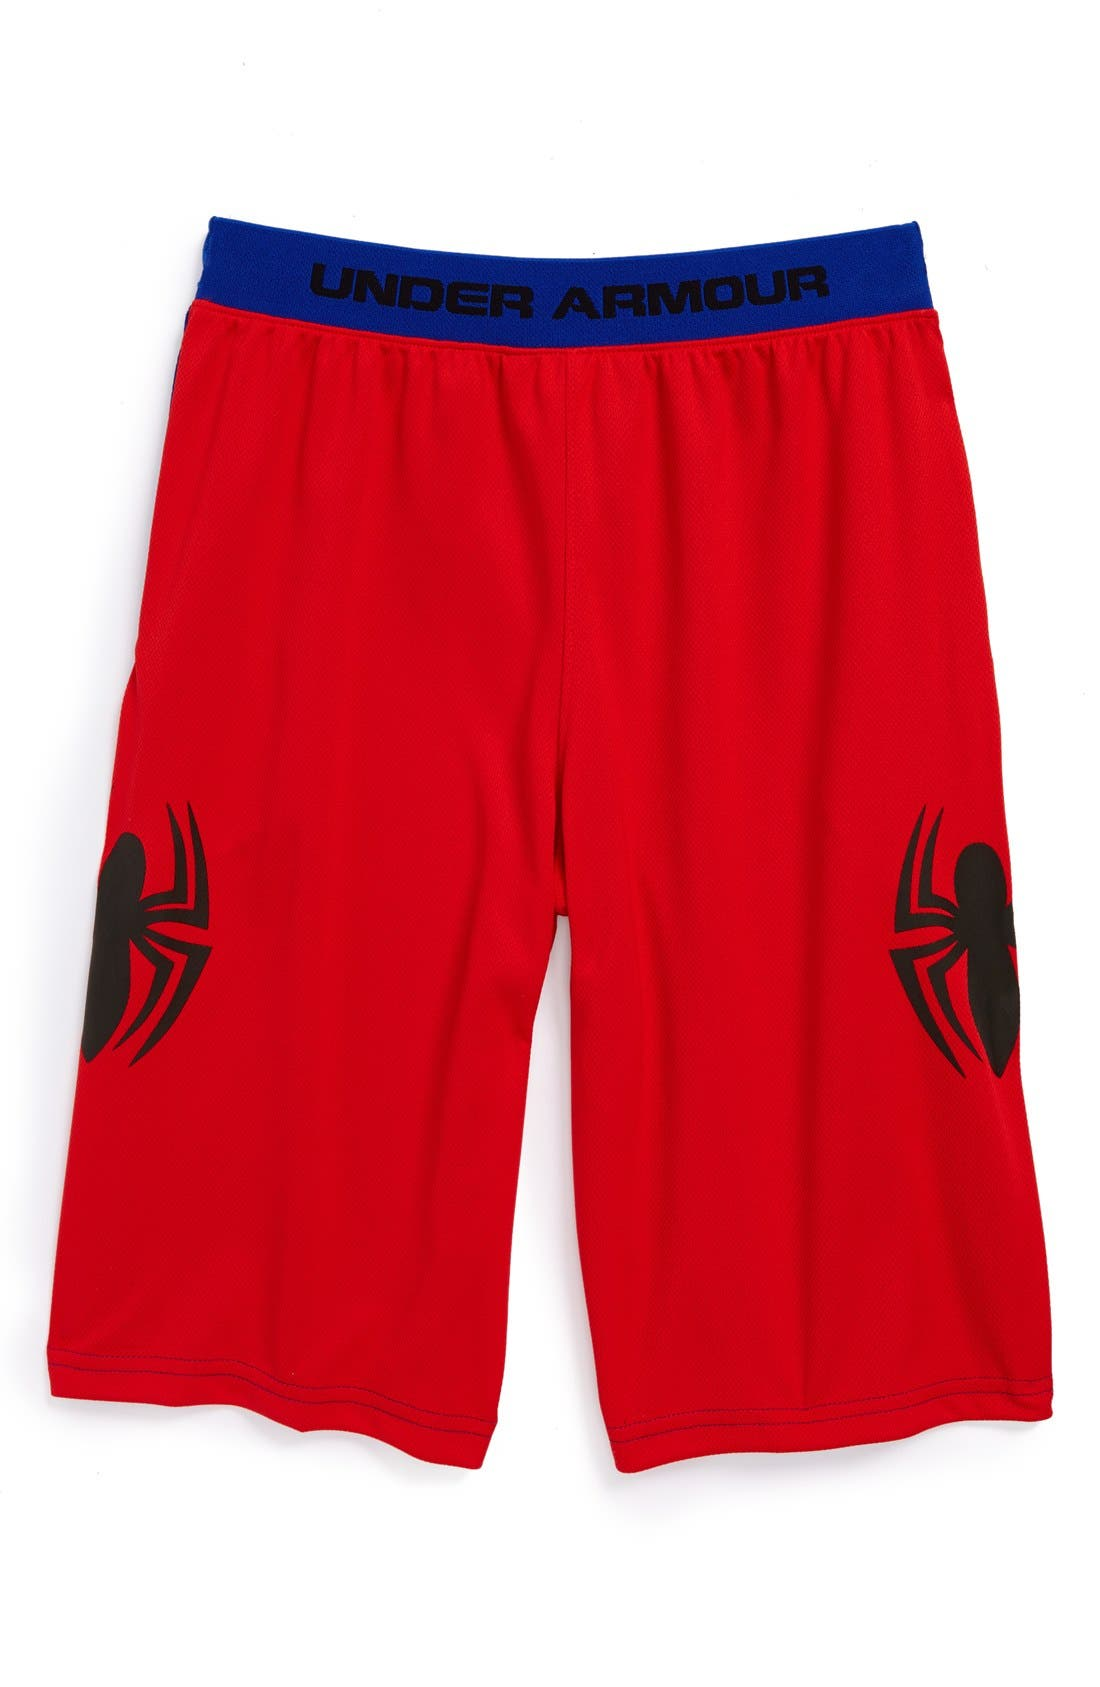 Alternate Image 1 Selected - Under Armour 'Alter Ego - Spiderman' Shorts (Little Boys & Big Boys)